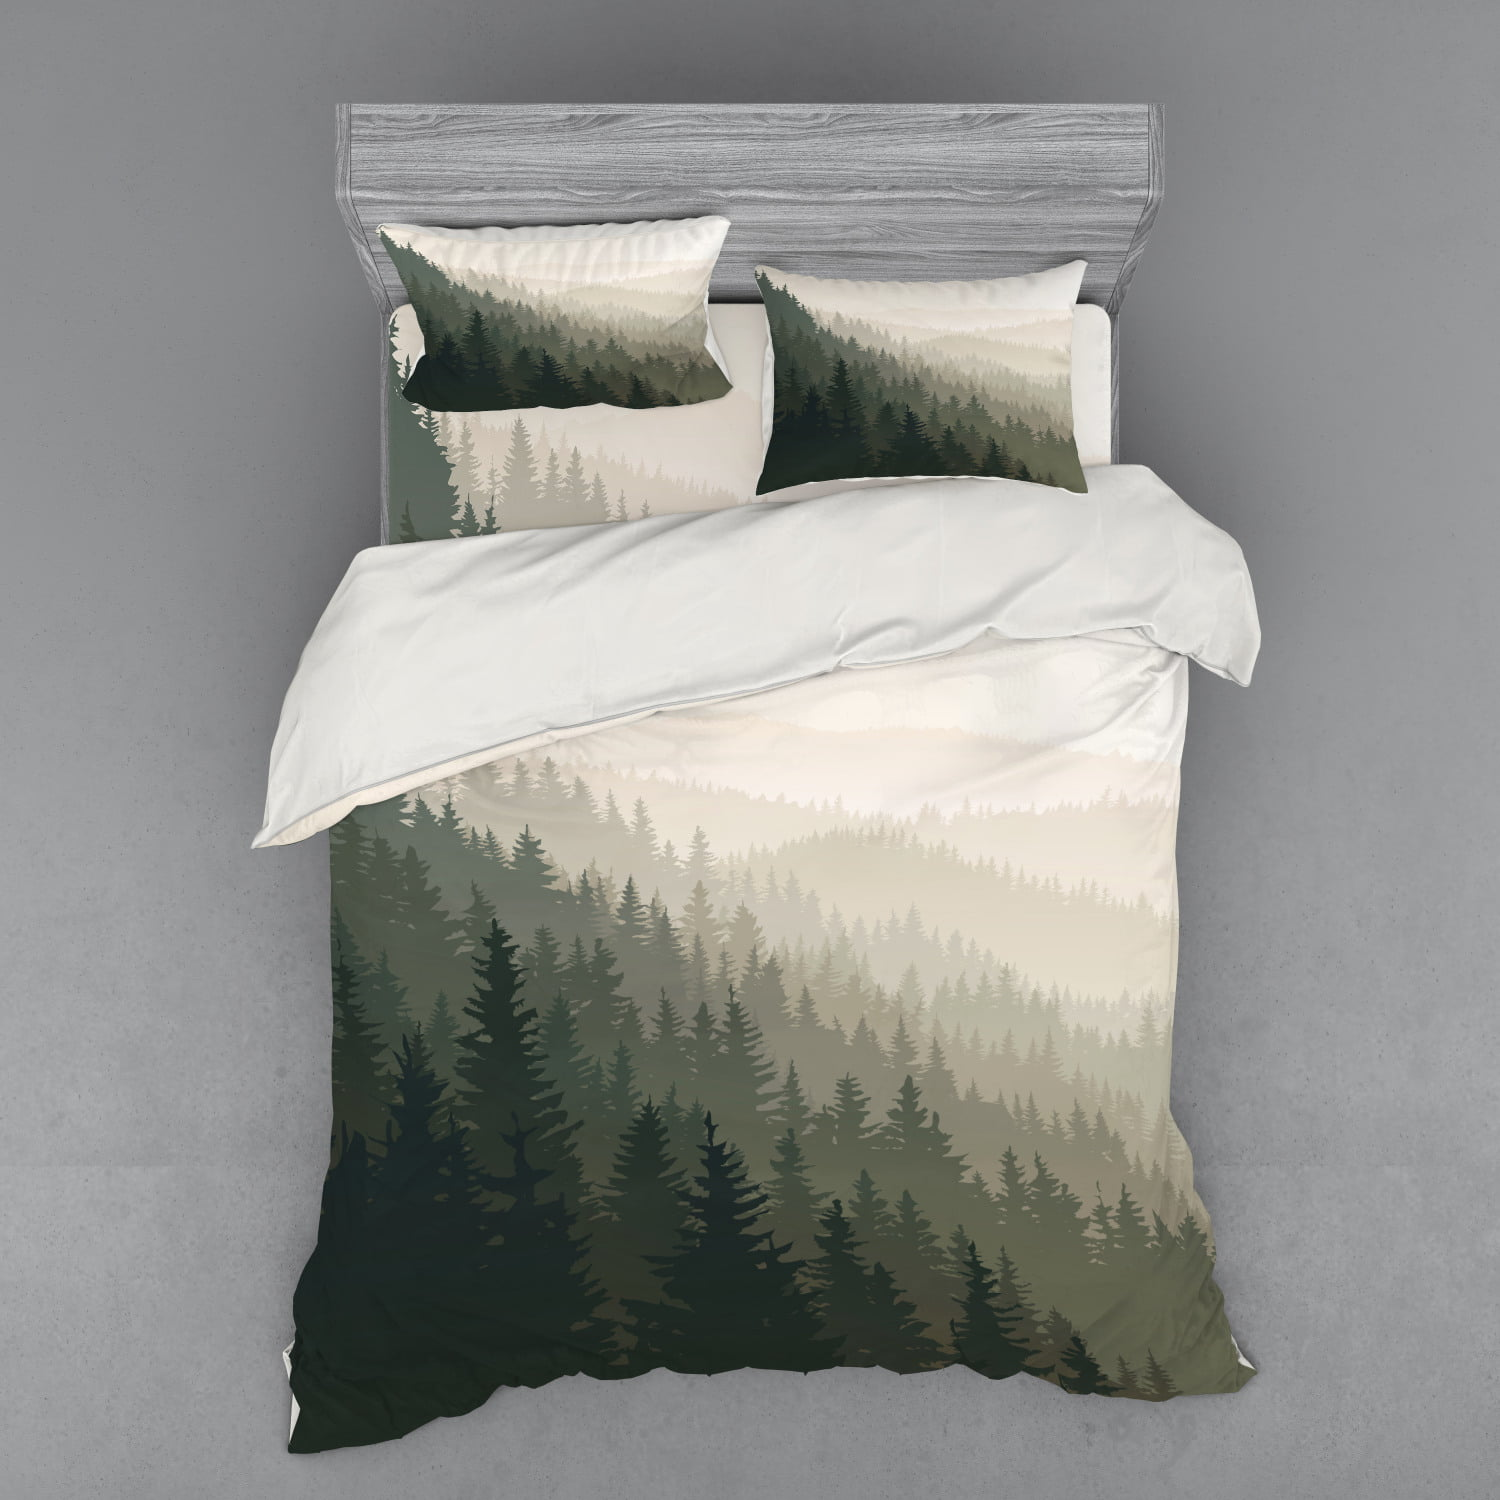 Forest Duvet Cover Set, Northern Parts Of The World